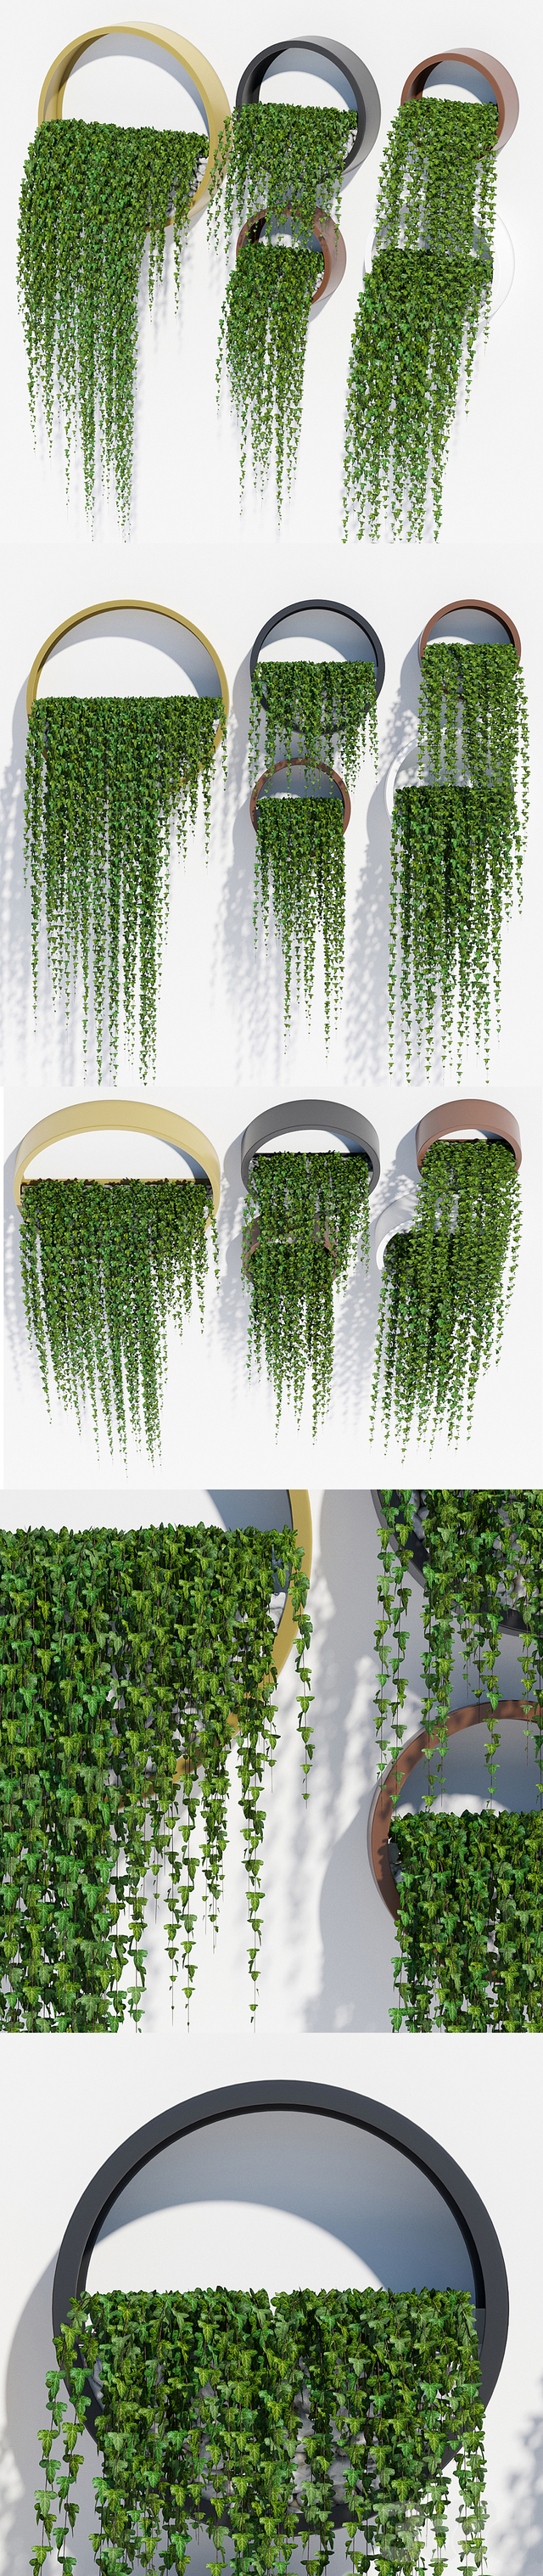 Wall planters ivy